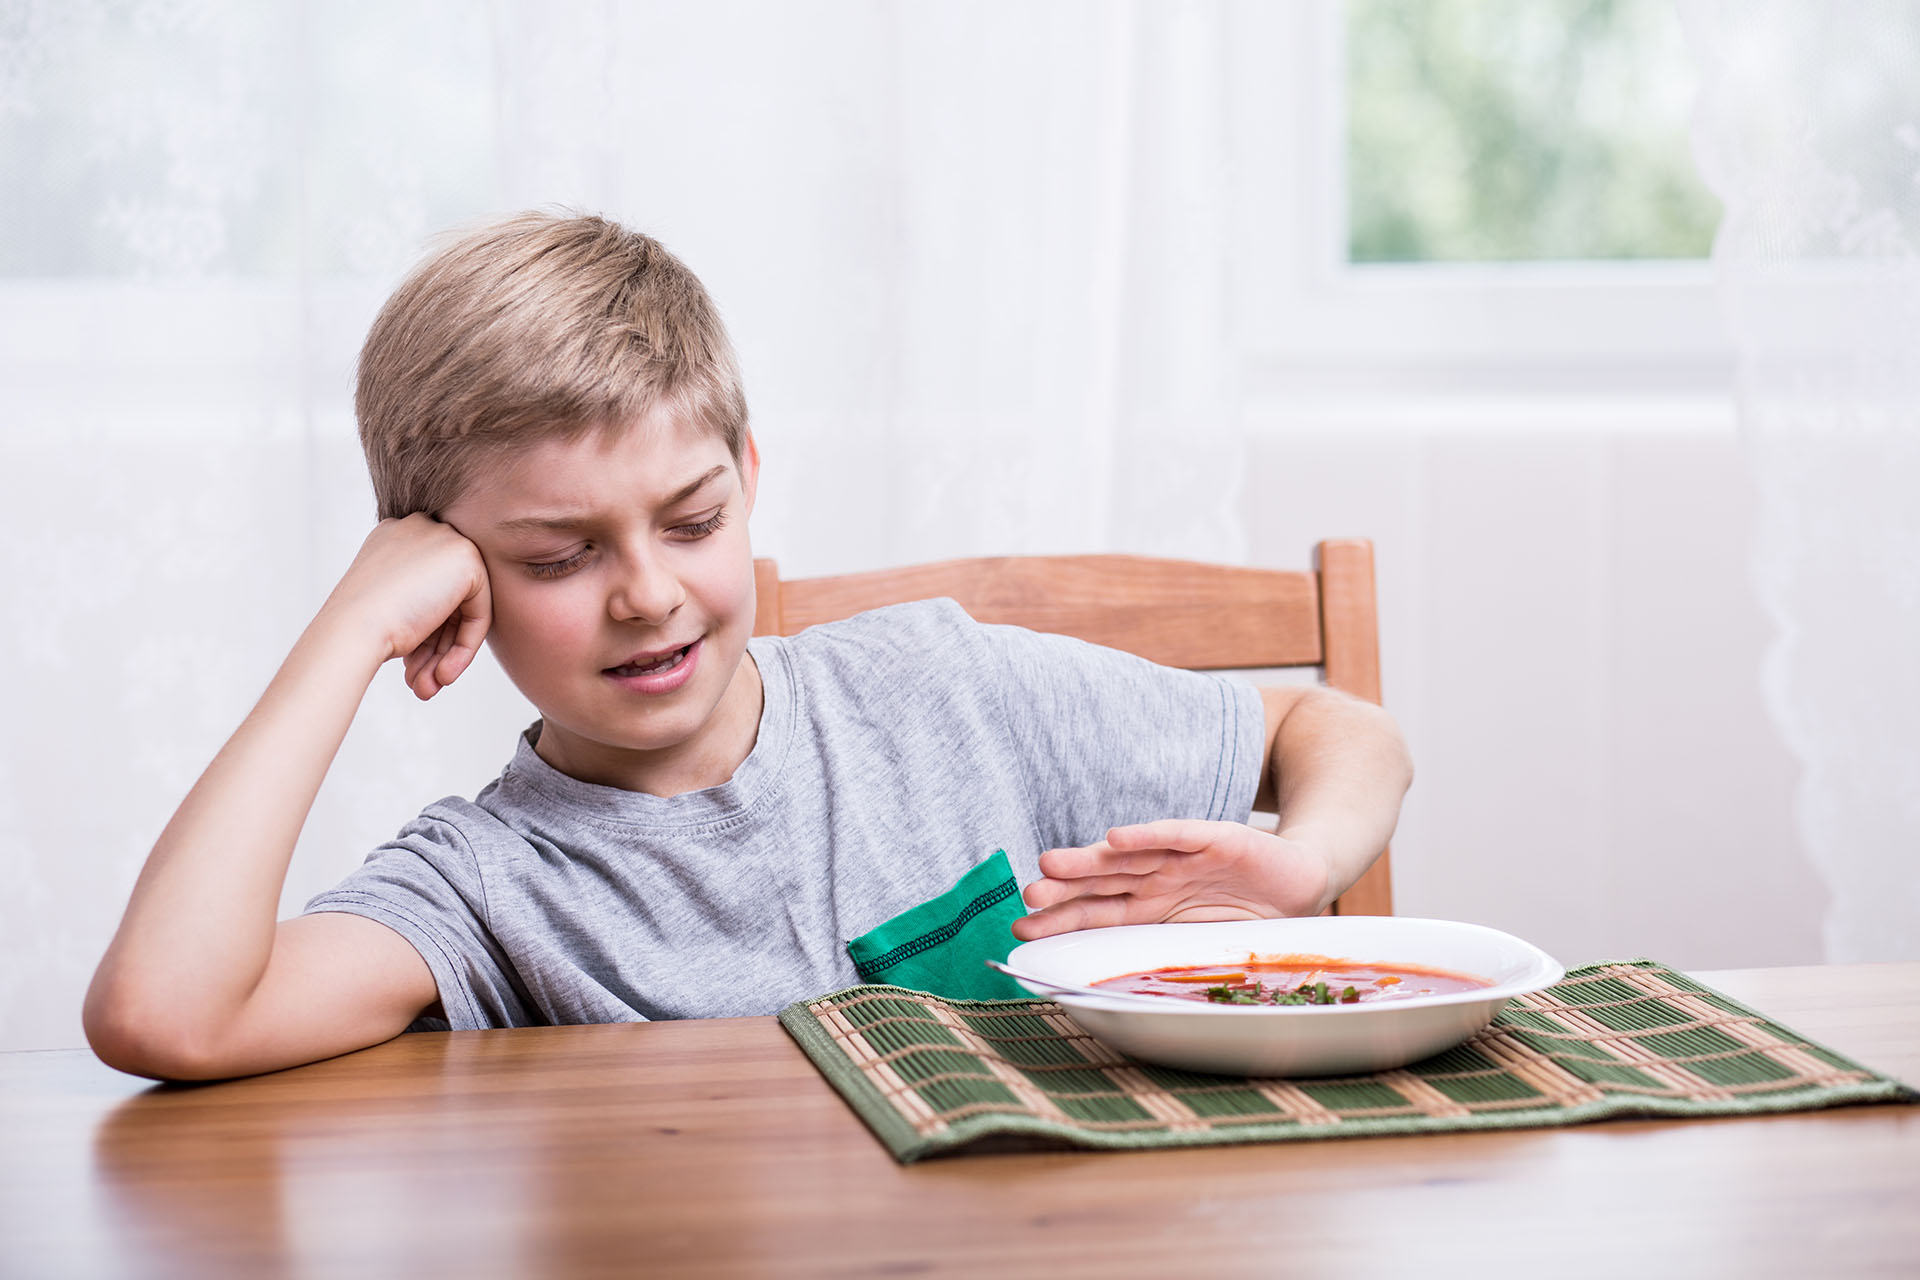 Young boy pushes away bowl of soup at lunchtime.